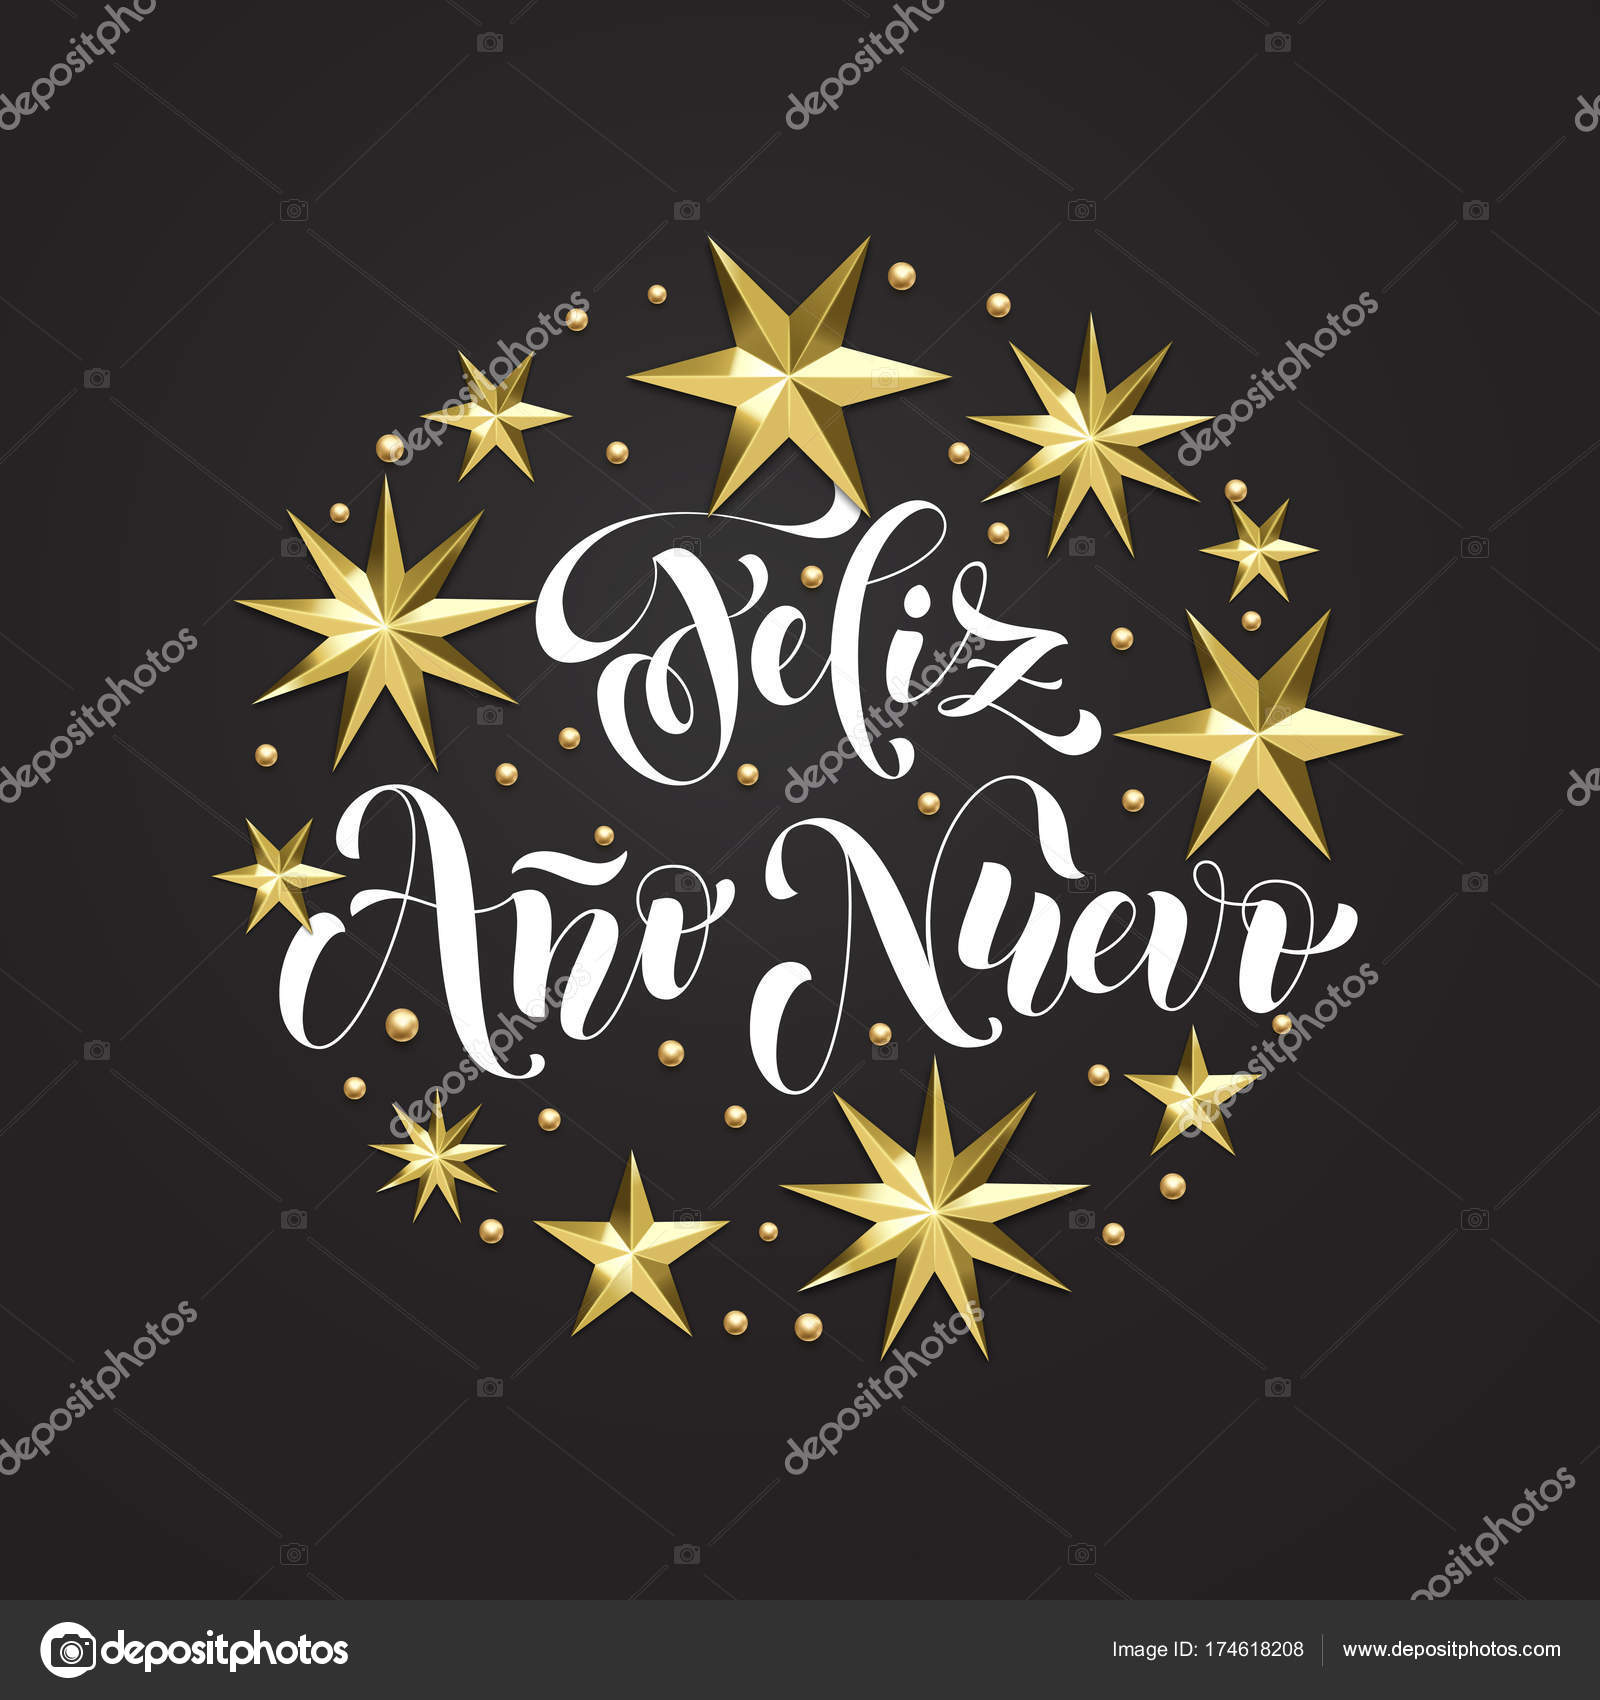 feliz ano nuevo spanish happy new year holiday golden decoration calligraphy font for xmas greeting card